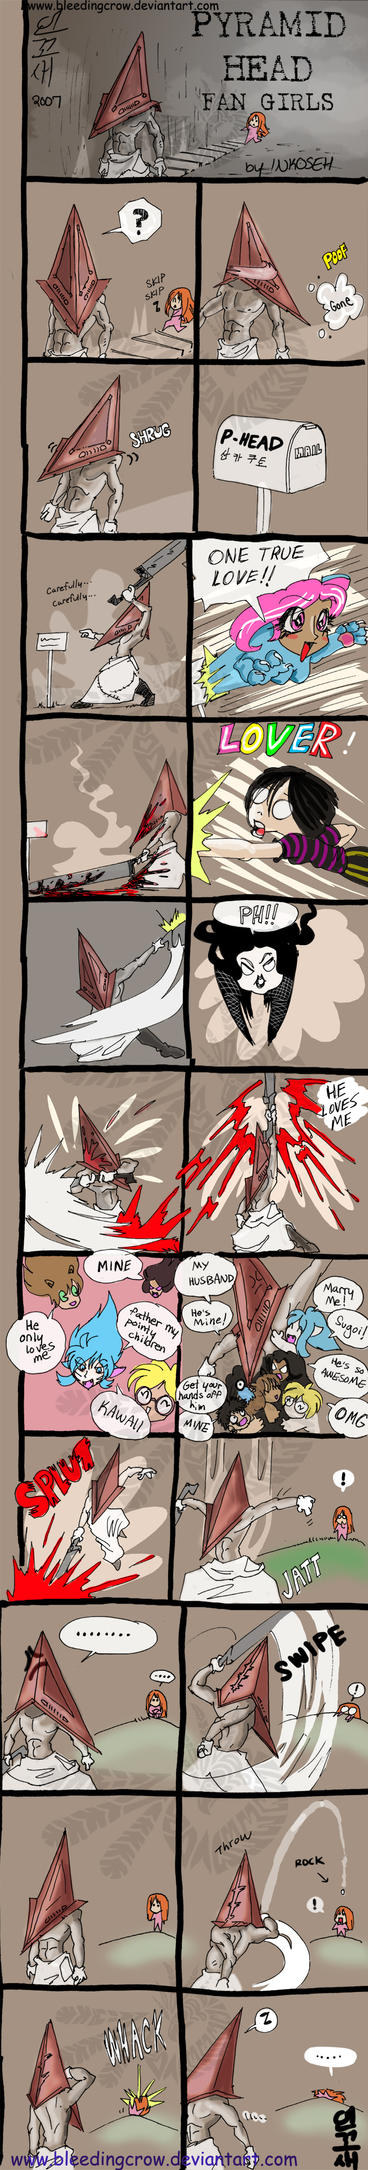 PYRAMID HEAD FANGIRLS by macawnivore